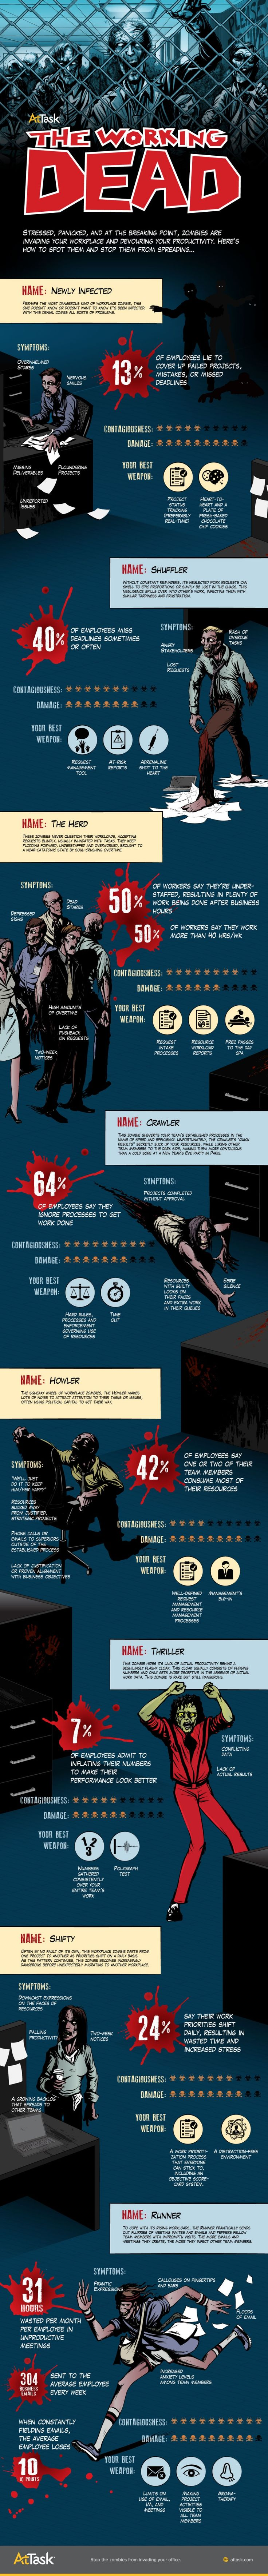 """The Working Dead: Infographic; """"Stressed, panicked, and at the breaking point? Zombies are invading your workplace and devouring your productivity. This infographic created by AtTask points out how to spot the eight types of workplace zombies and how to stop them from spreading. Do you have any of these working dead in your office?"""" ~via Brian Junyor; LinkedIn"""